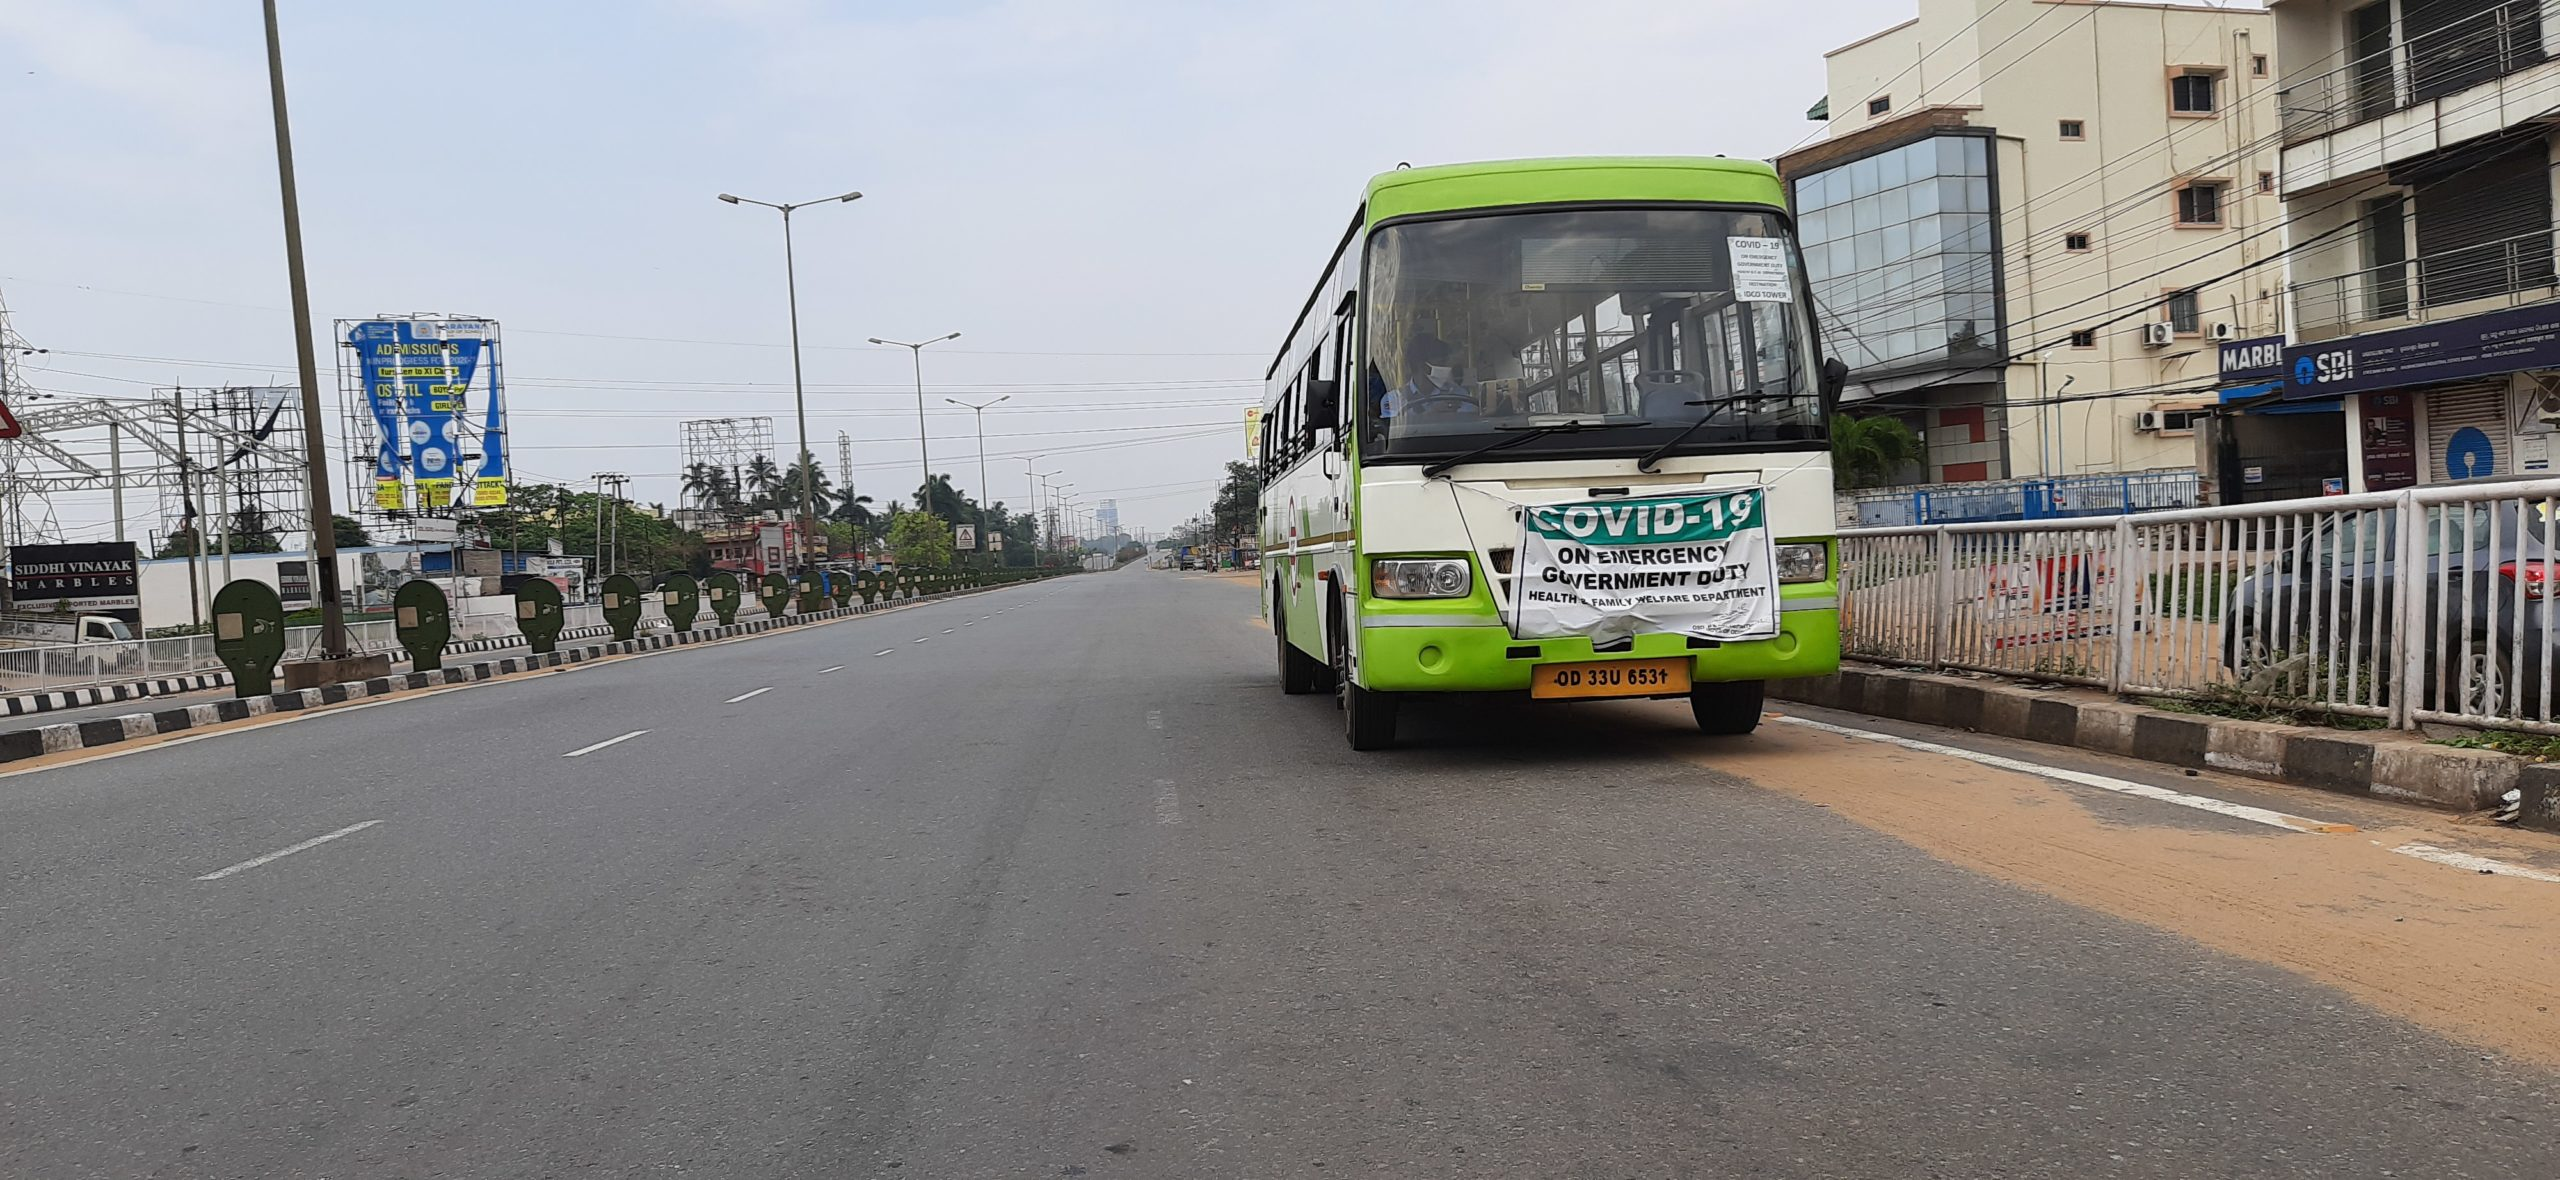 Mo Bus, the public bus service of Bhubaneswar and Cuttack is all set to see a new fleet of electric buses. Photo by Manish Kumar/Mongabay.